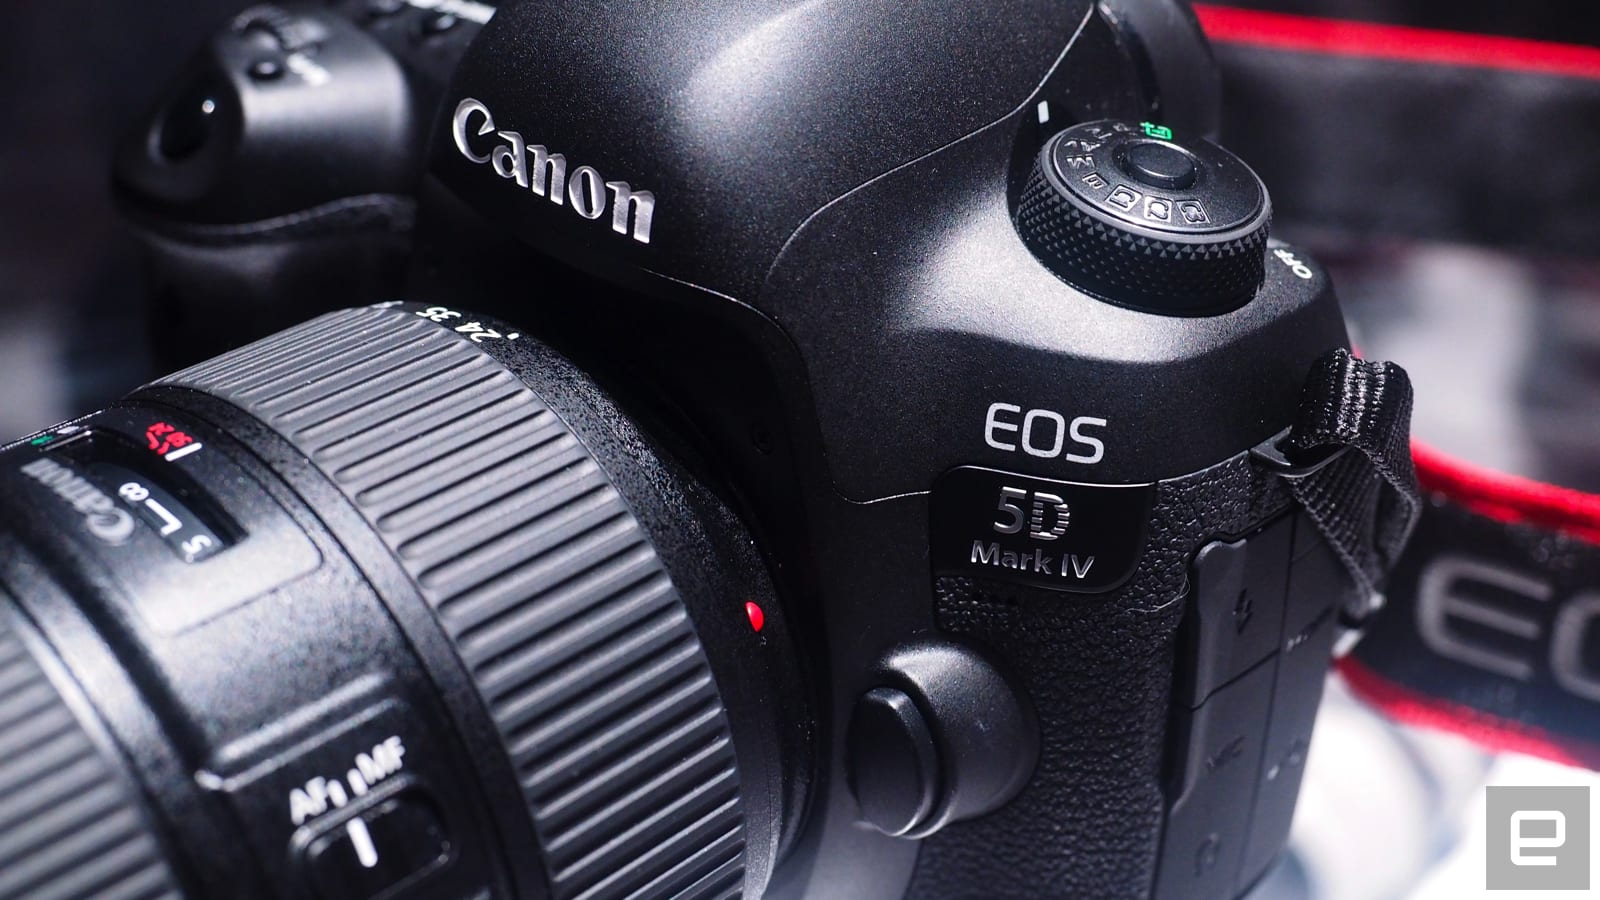 A First Look At Canon S Eos 5d Mark Iv